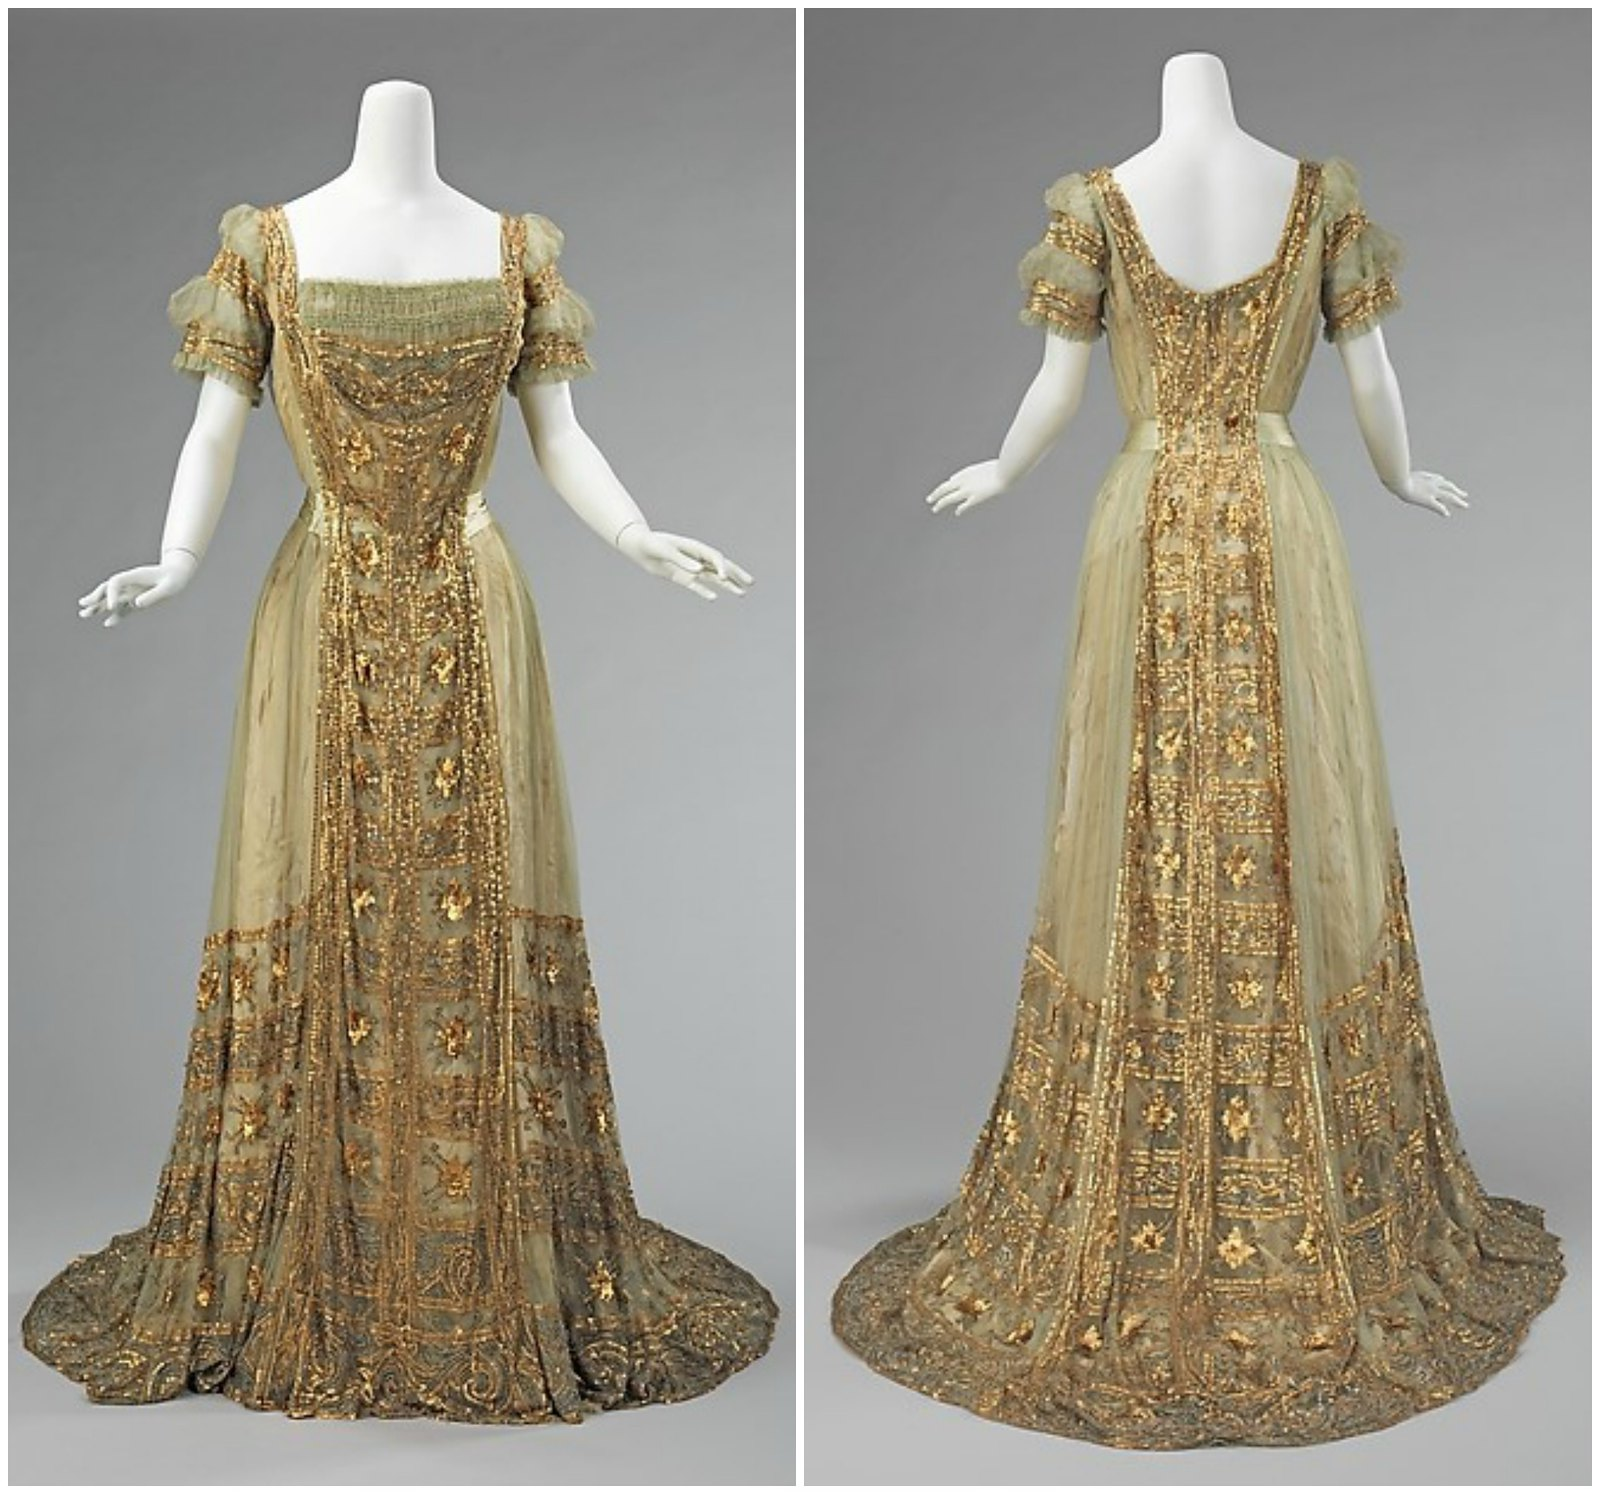 1910 Ball Gown. American. Silk. metmuseum